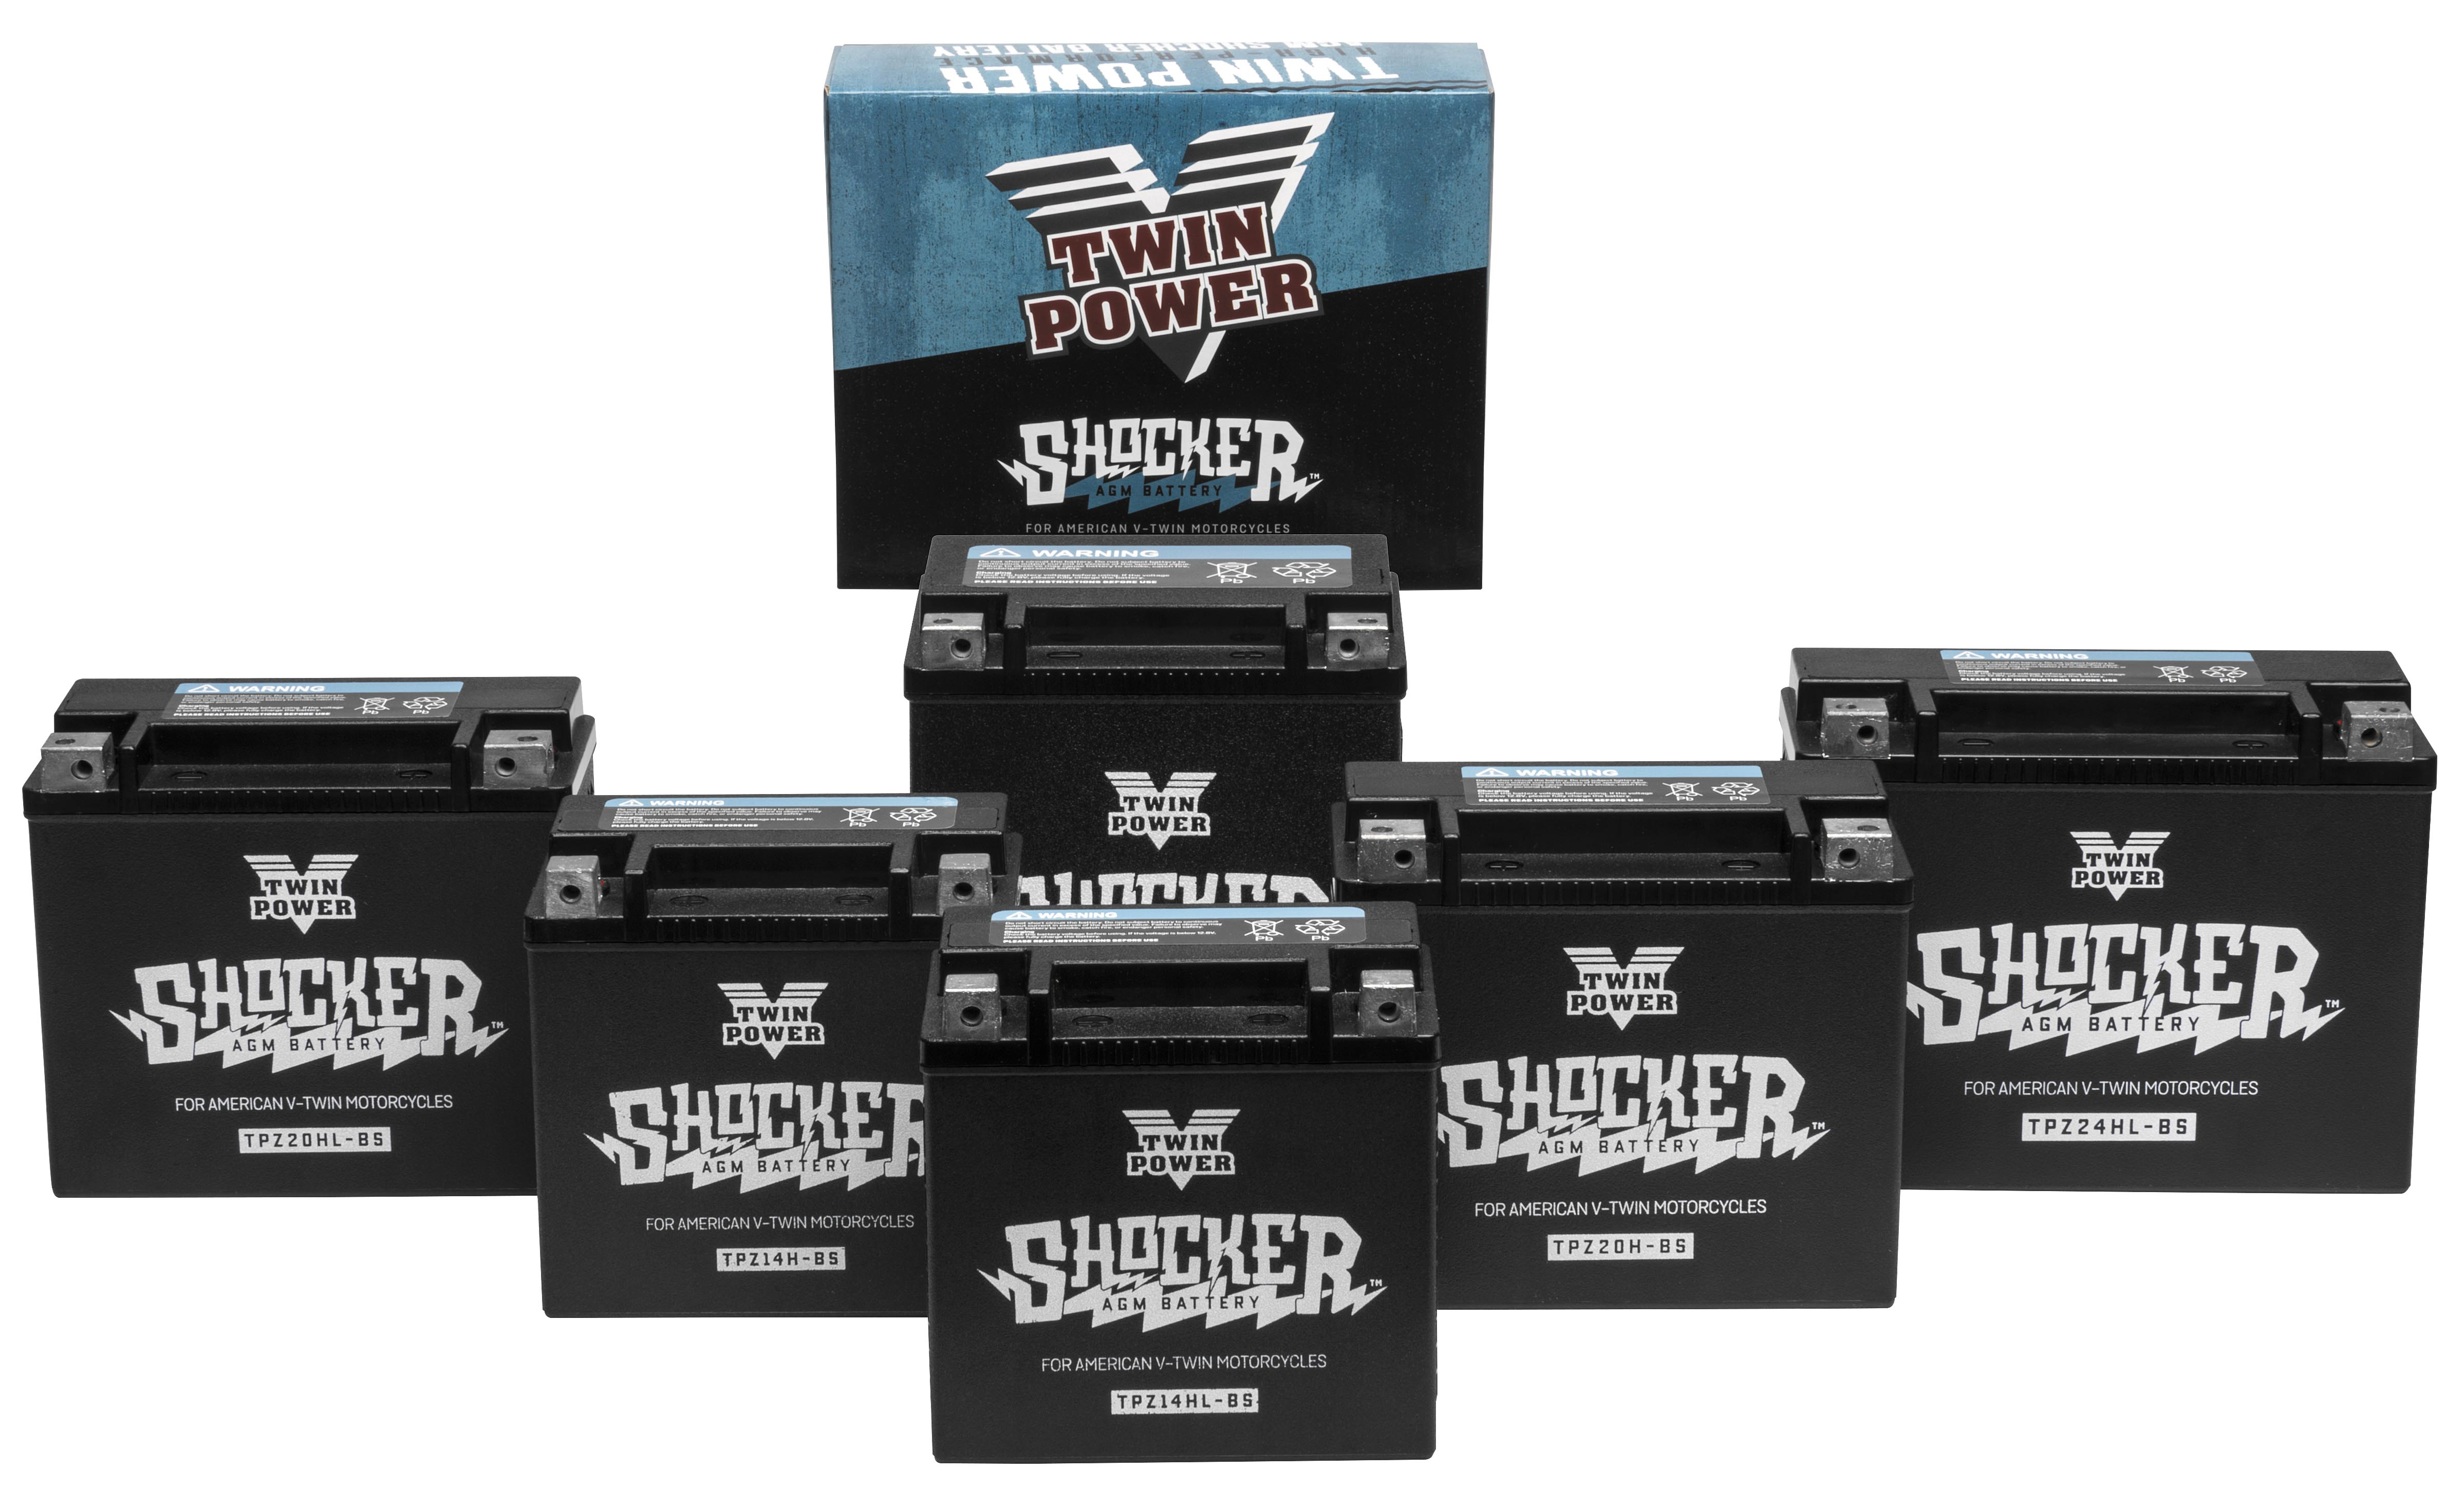 Twin Power Introduces Shocker™ Battery Line